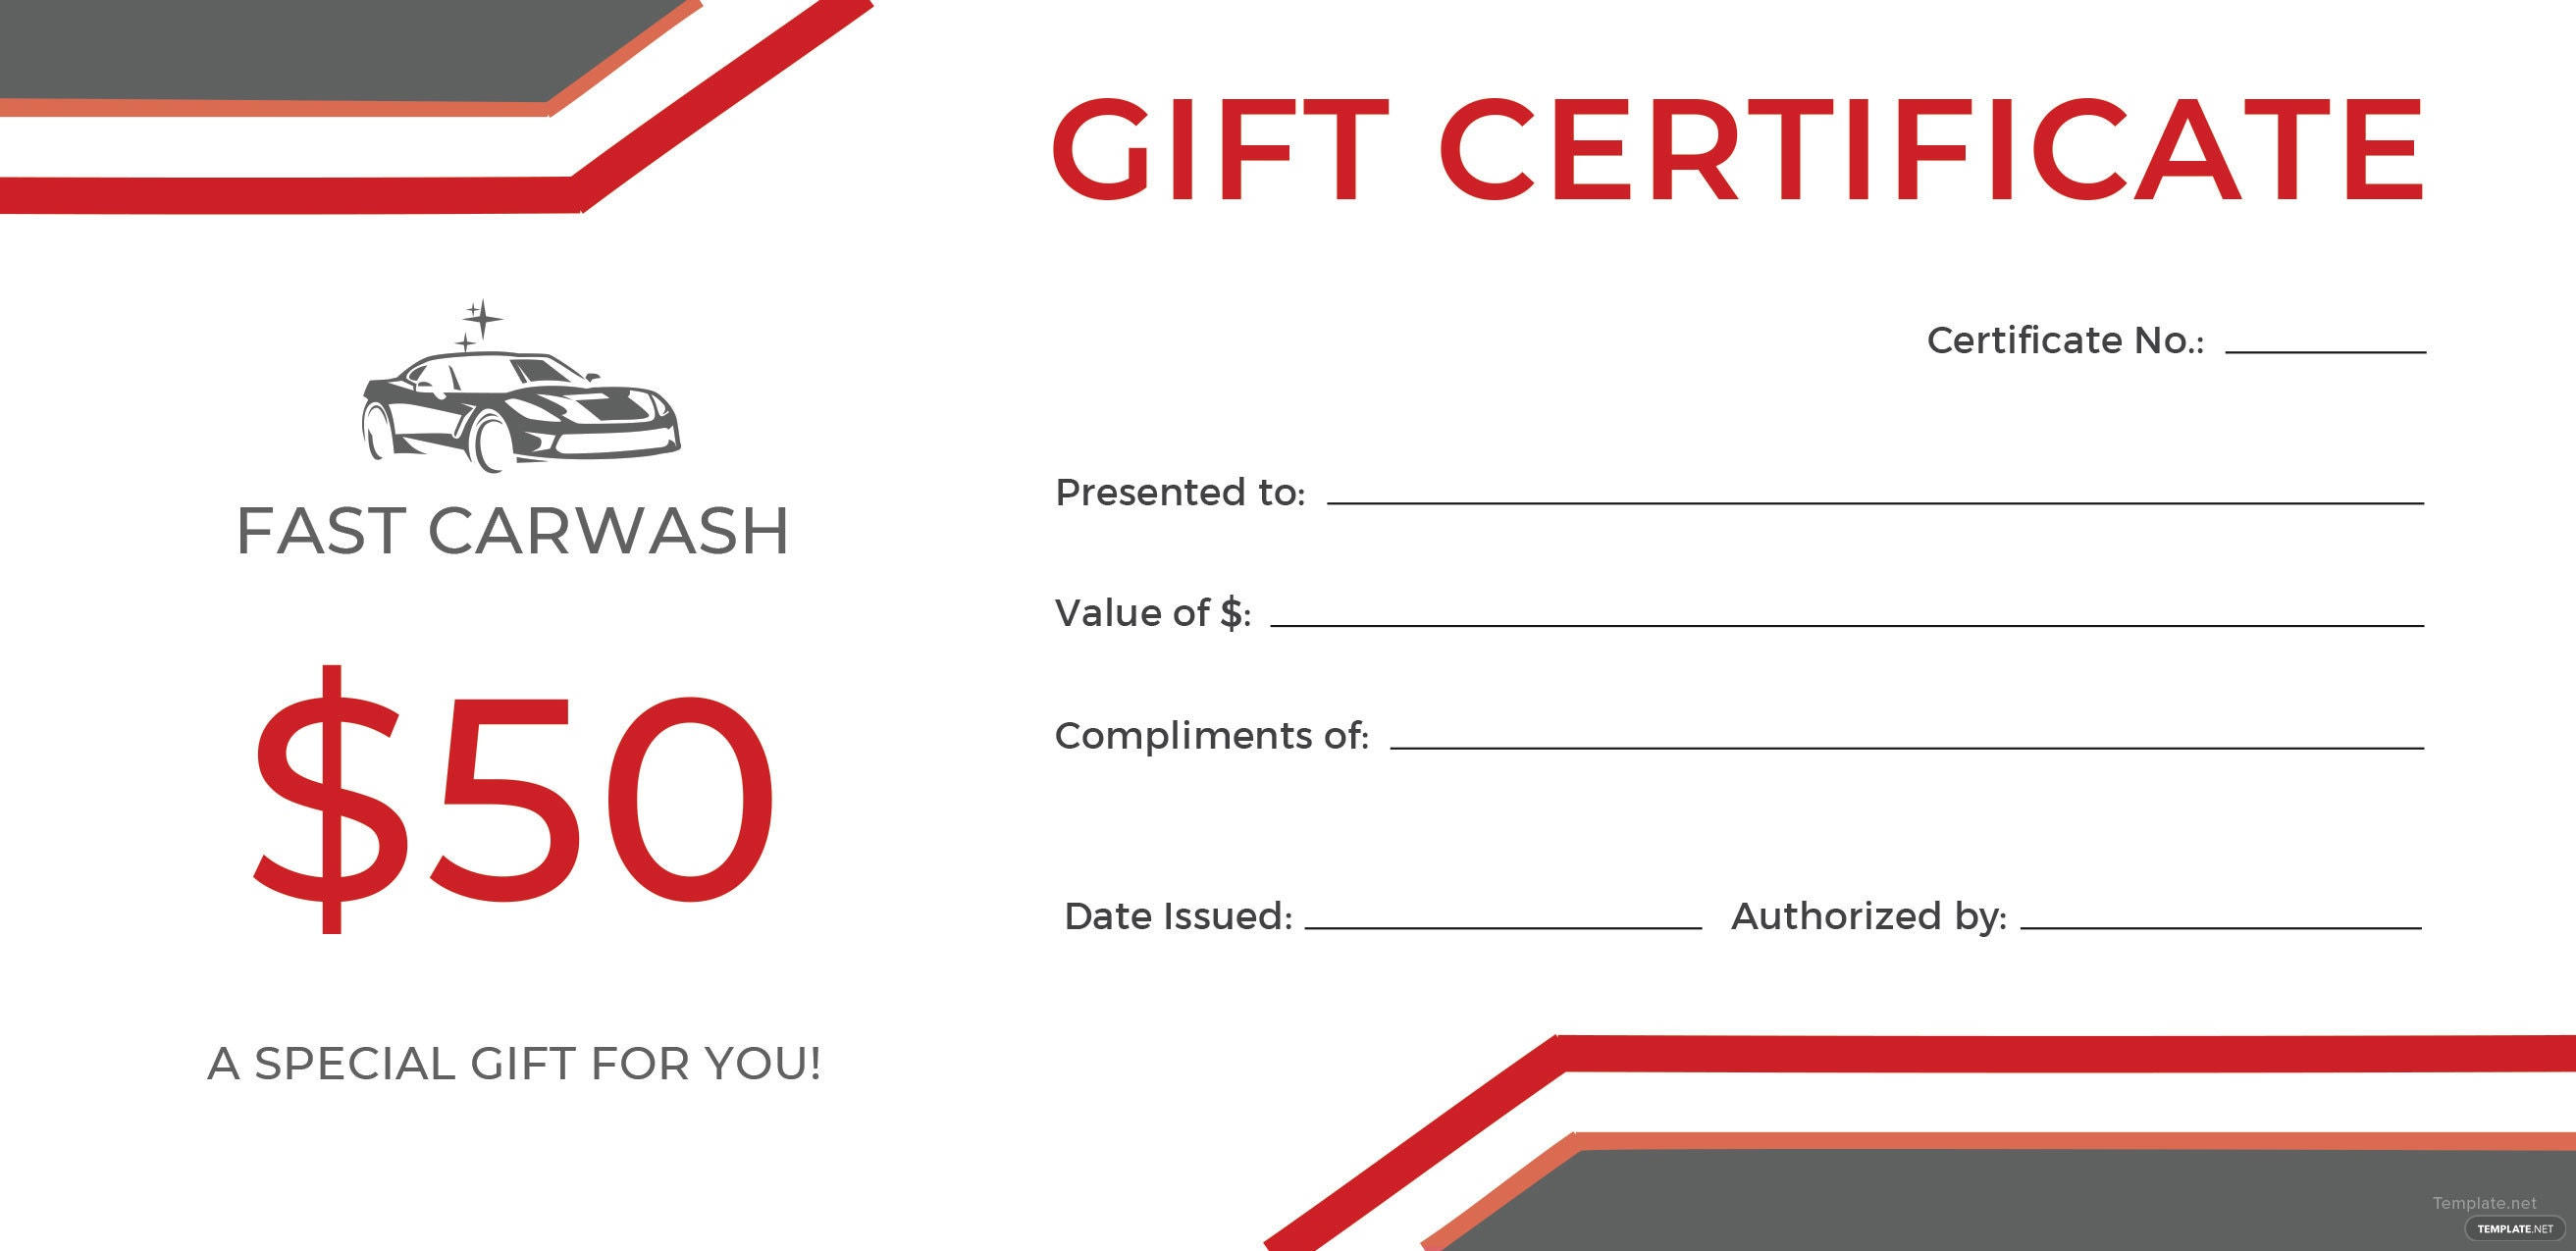 Free carwash gift certificate template in adobe for Auto detailing gift certificate template